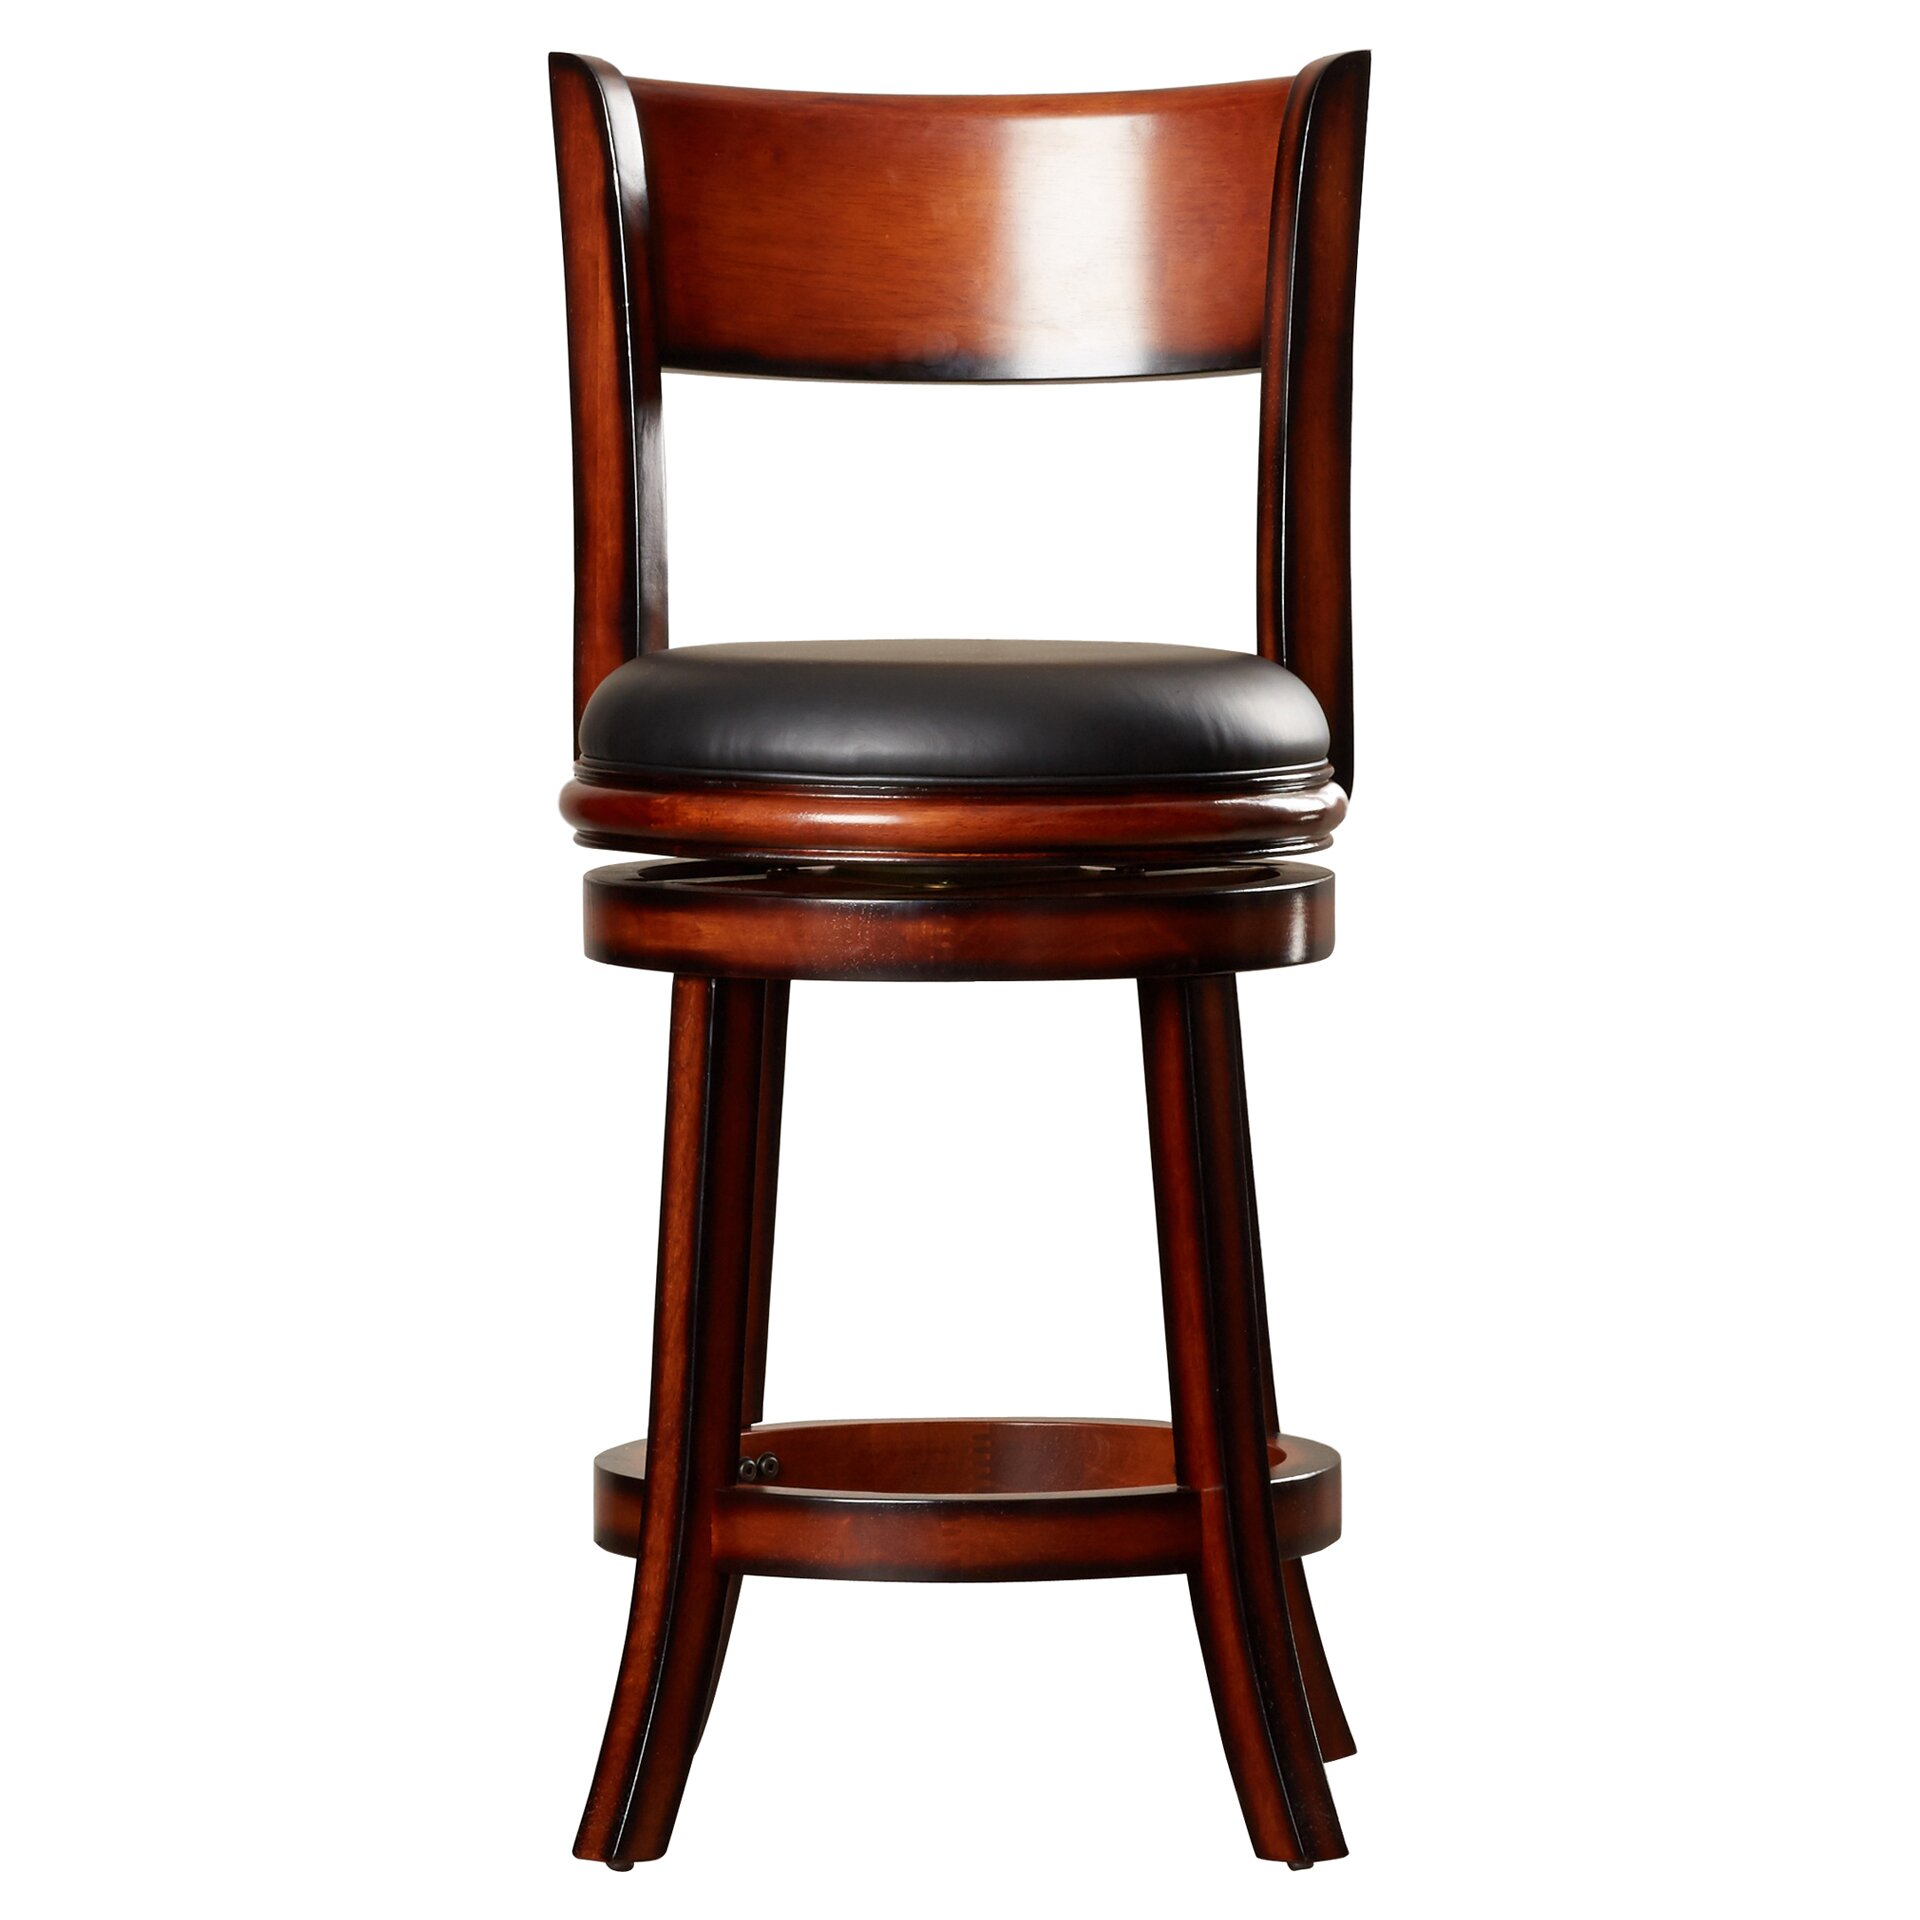 Alcott Hill Shiloh 24quot Swivel Bar Stool with Cushion  : Richard2B2425222BSwivel2BBar2BStool2Bwith2BCushion from www.wayfair.com size 1920 x 1920 jpeg 247kB